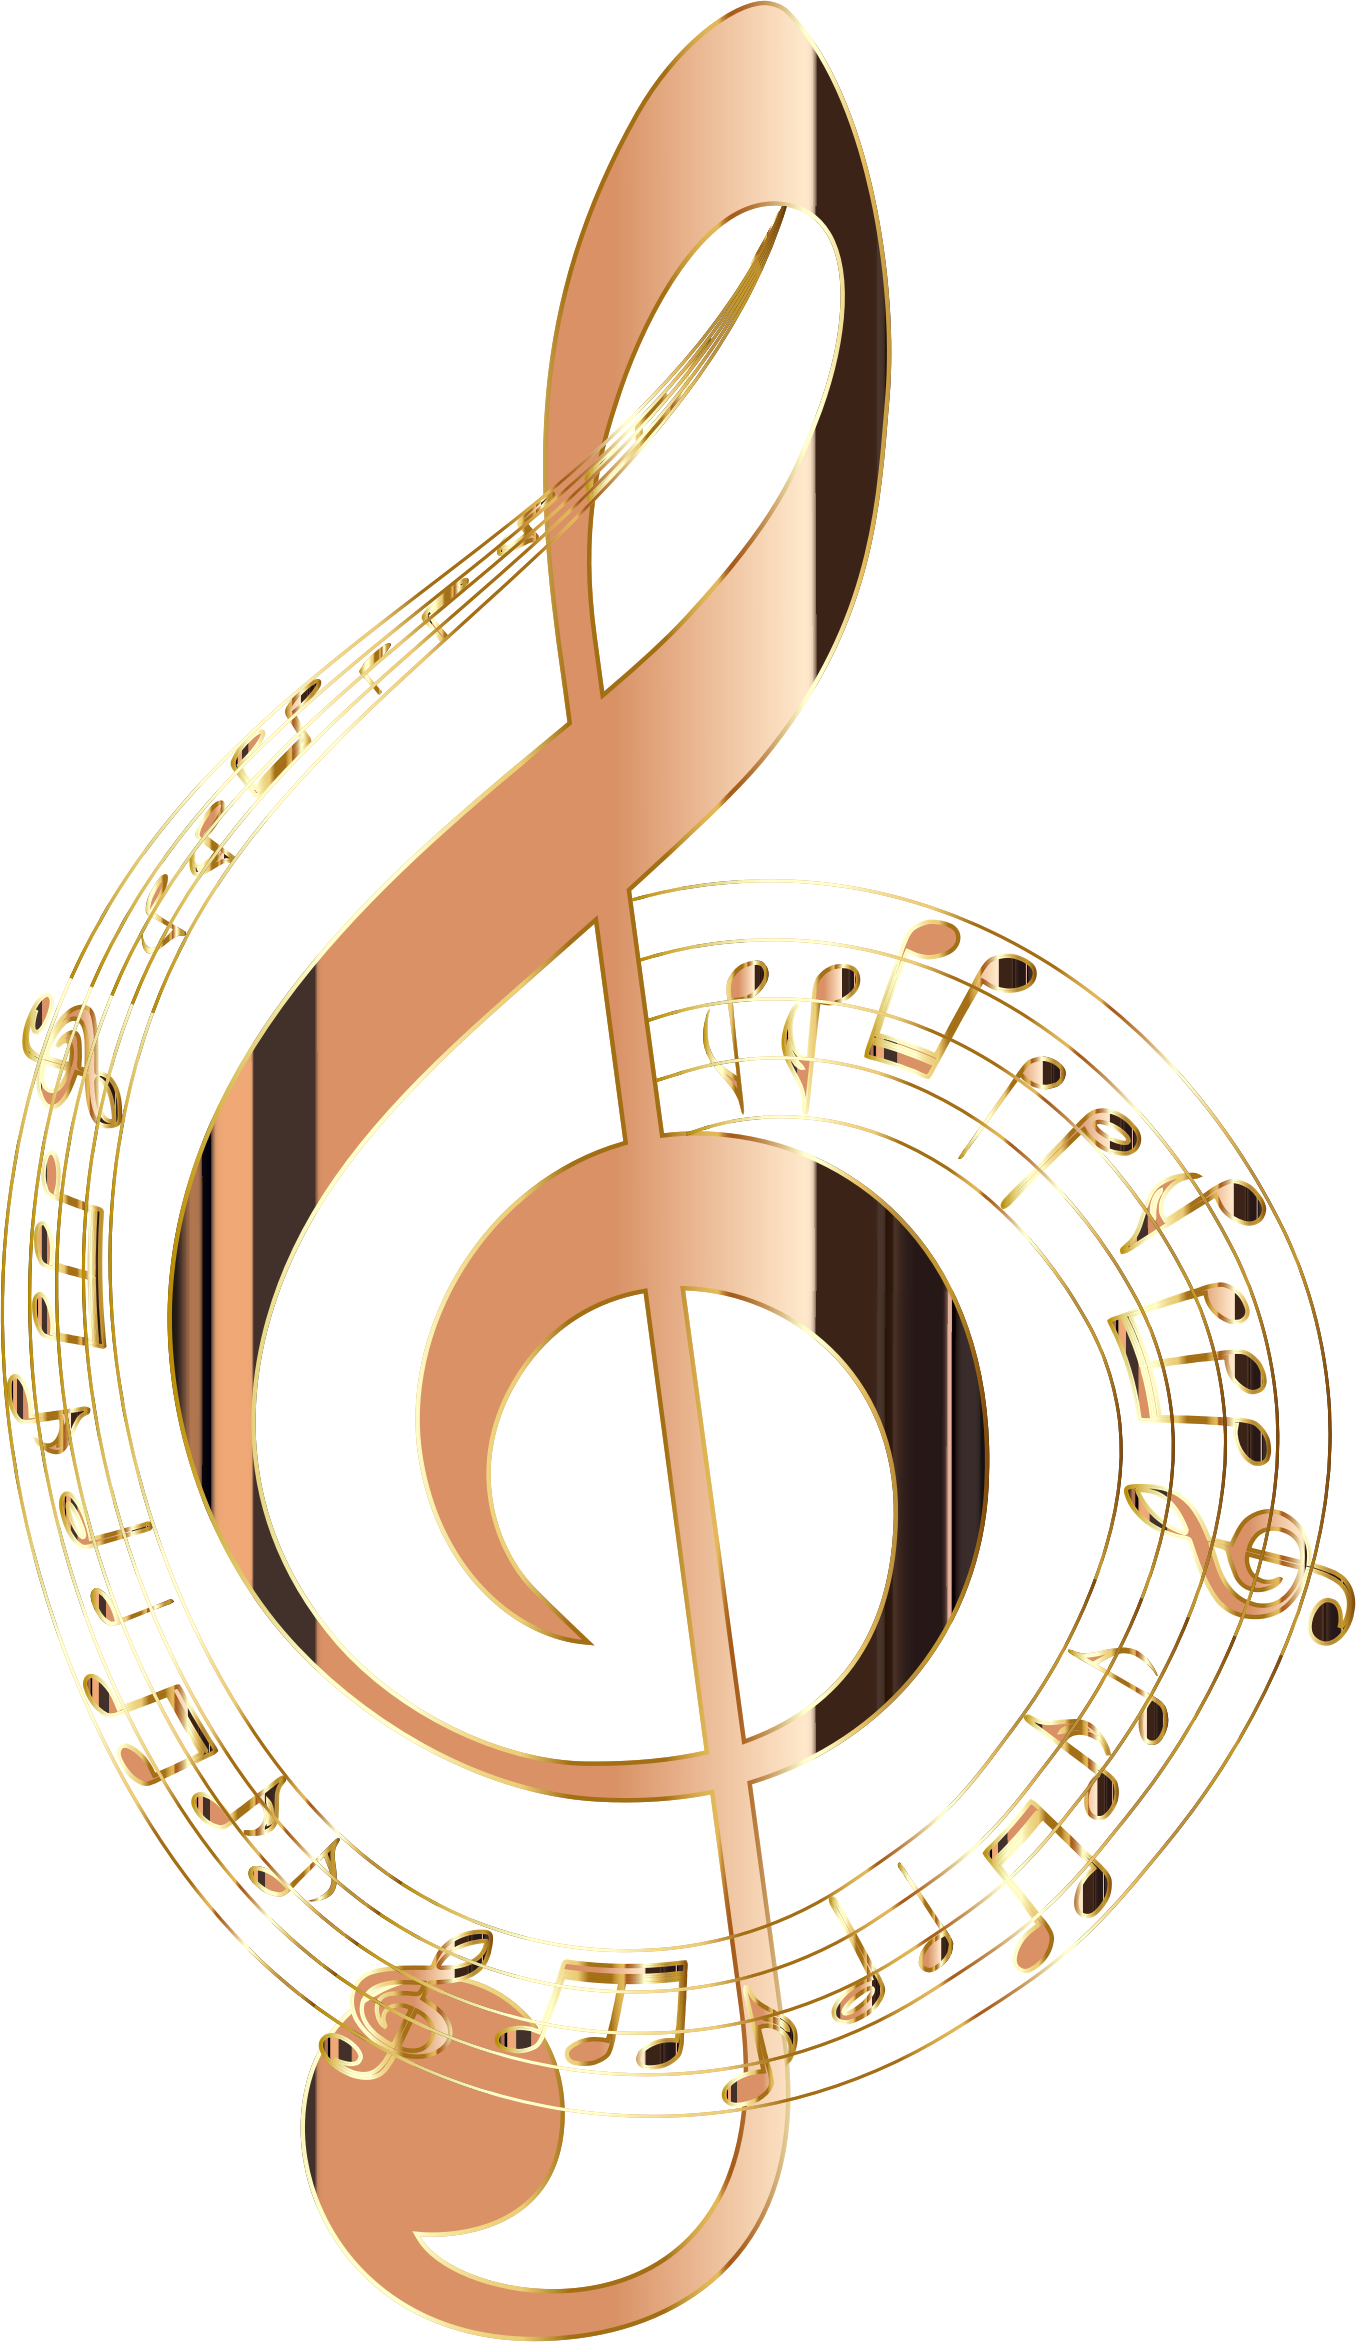 Png file format of music notes no background. Shiny copper musical typography